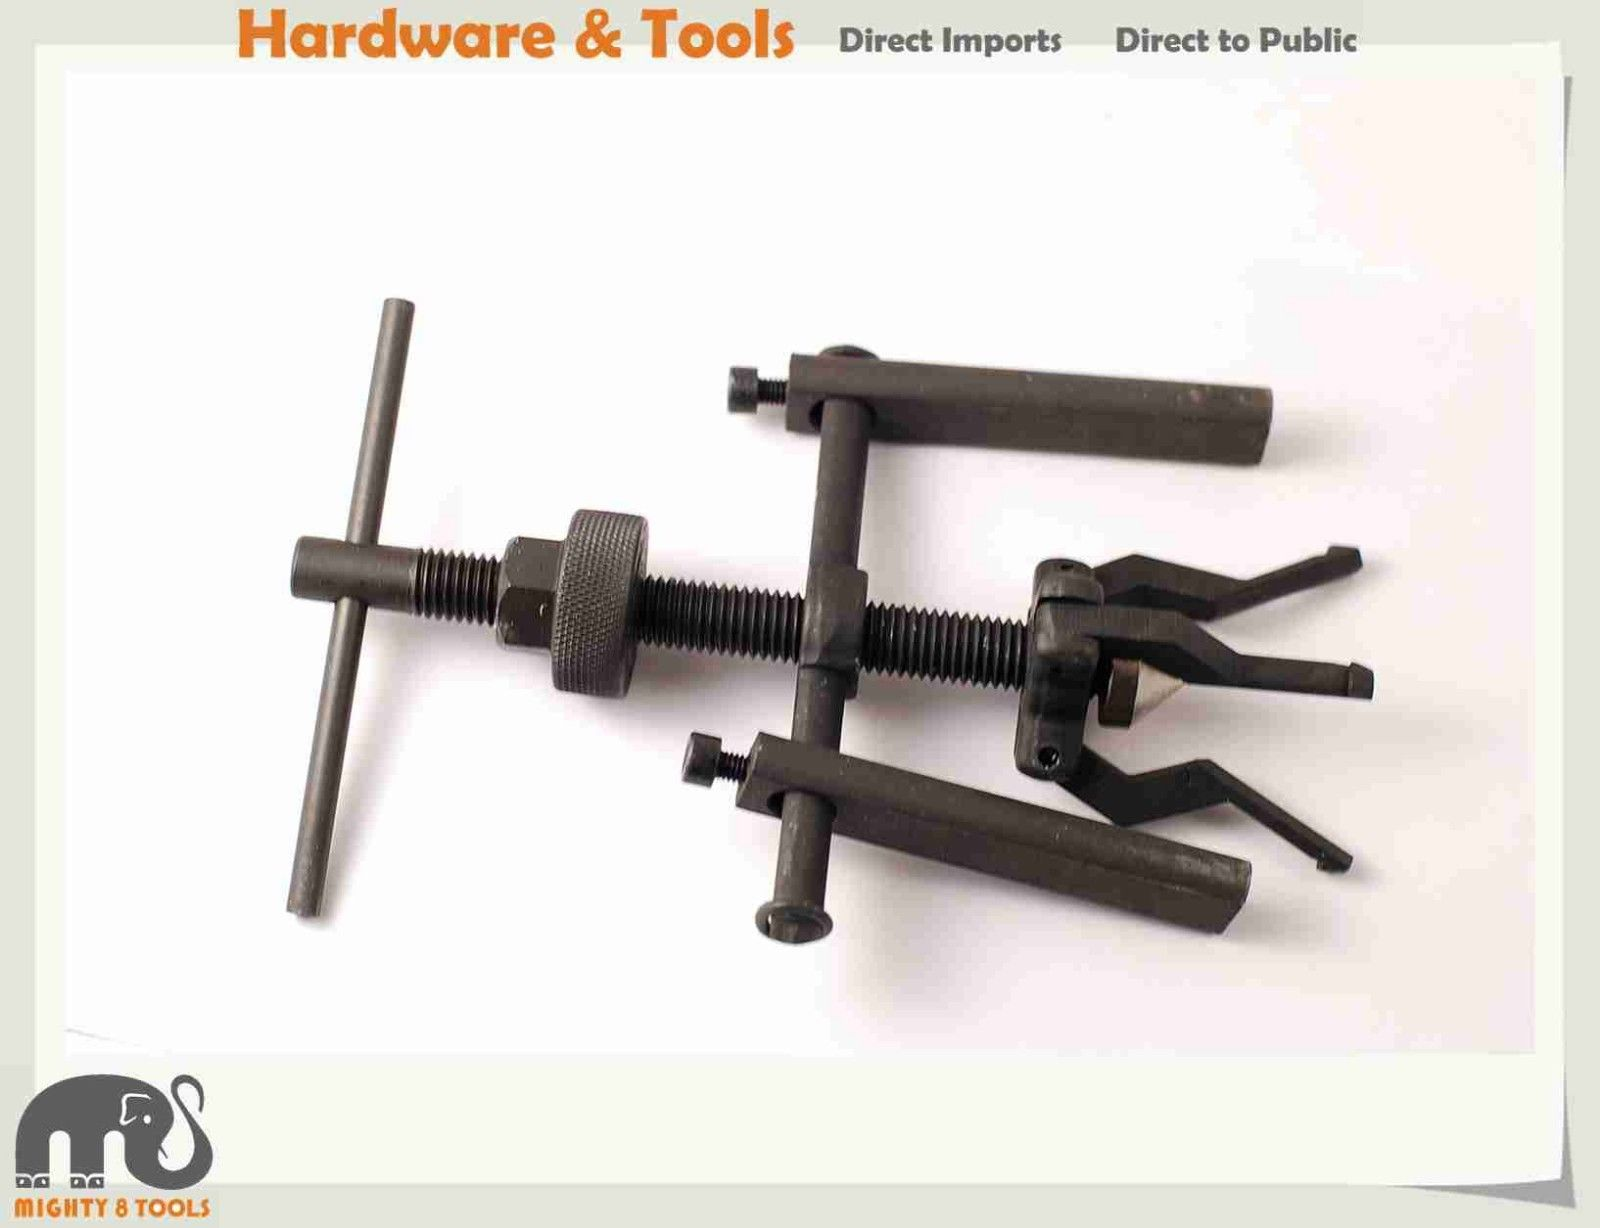 Cr-V 3 Jaw Pilot Internal Bearing Puller Cap. ID 12-38mm Bushing Gear Extractor winmax 6 gear puller 3 jaw set gear pulley bearing puller auto tool